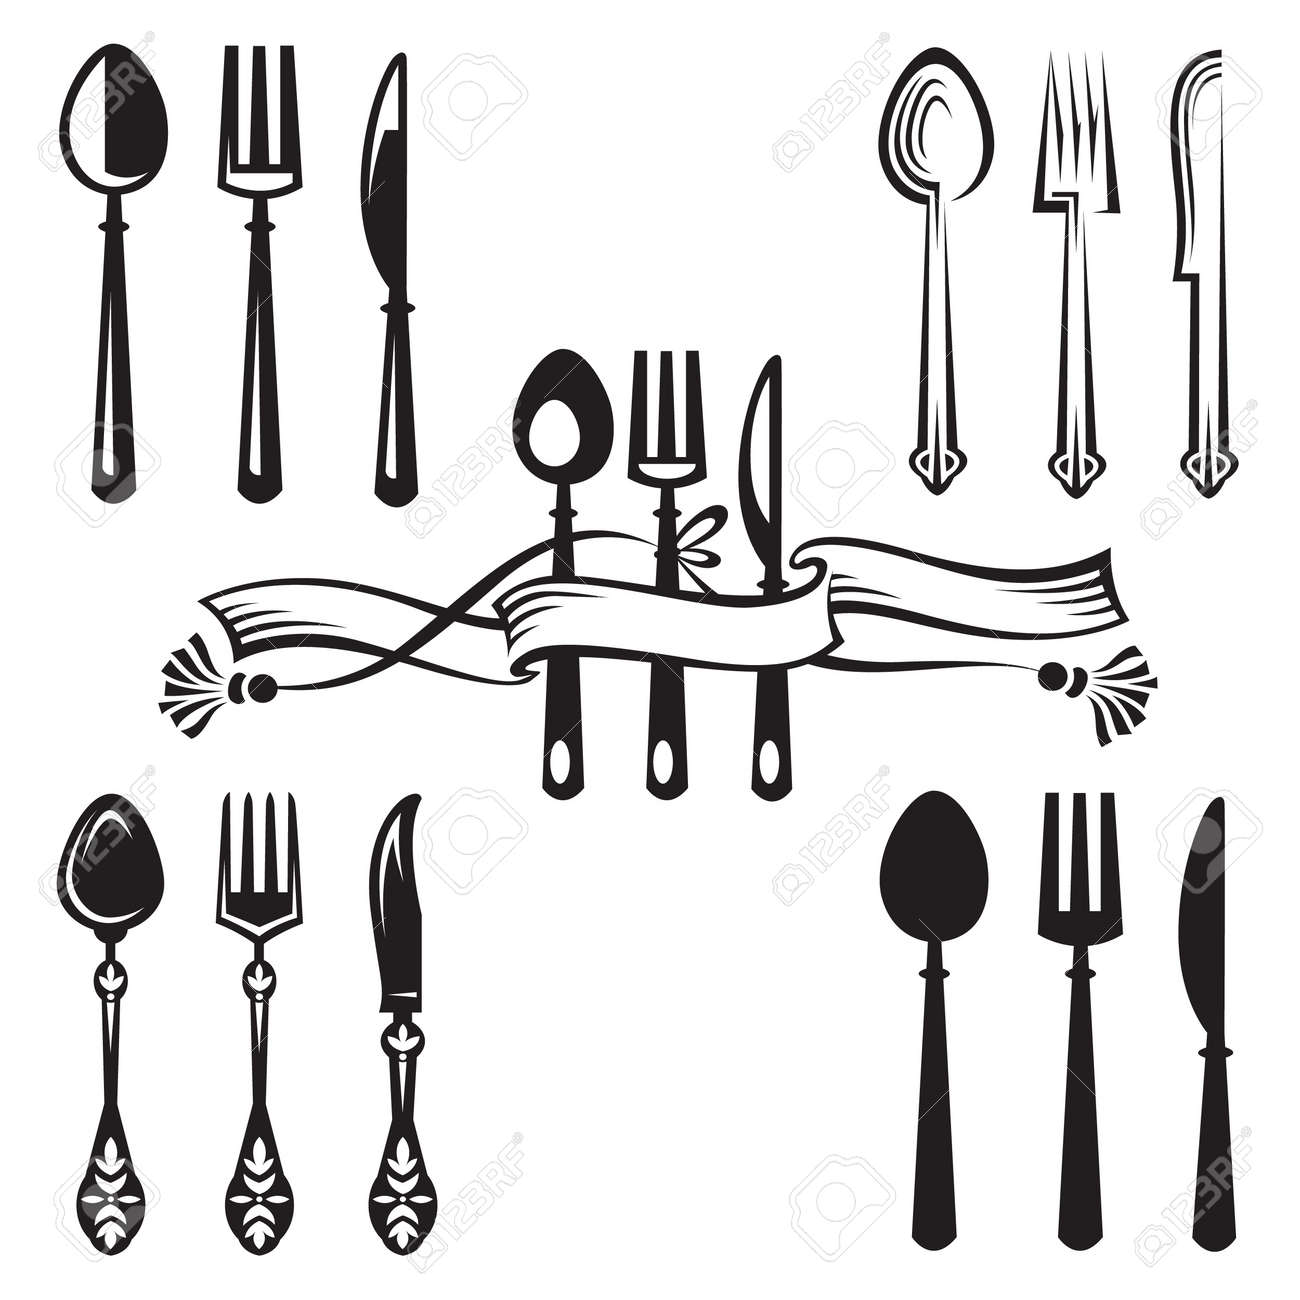 knife, fork and spoon Stock Vector - 11650110